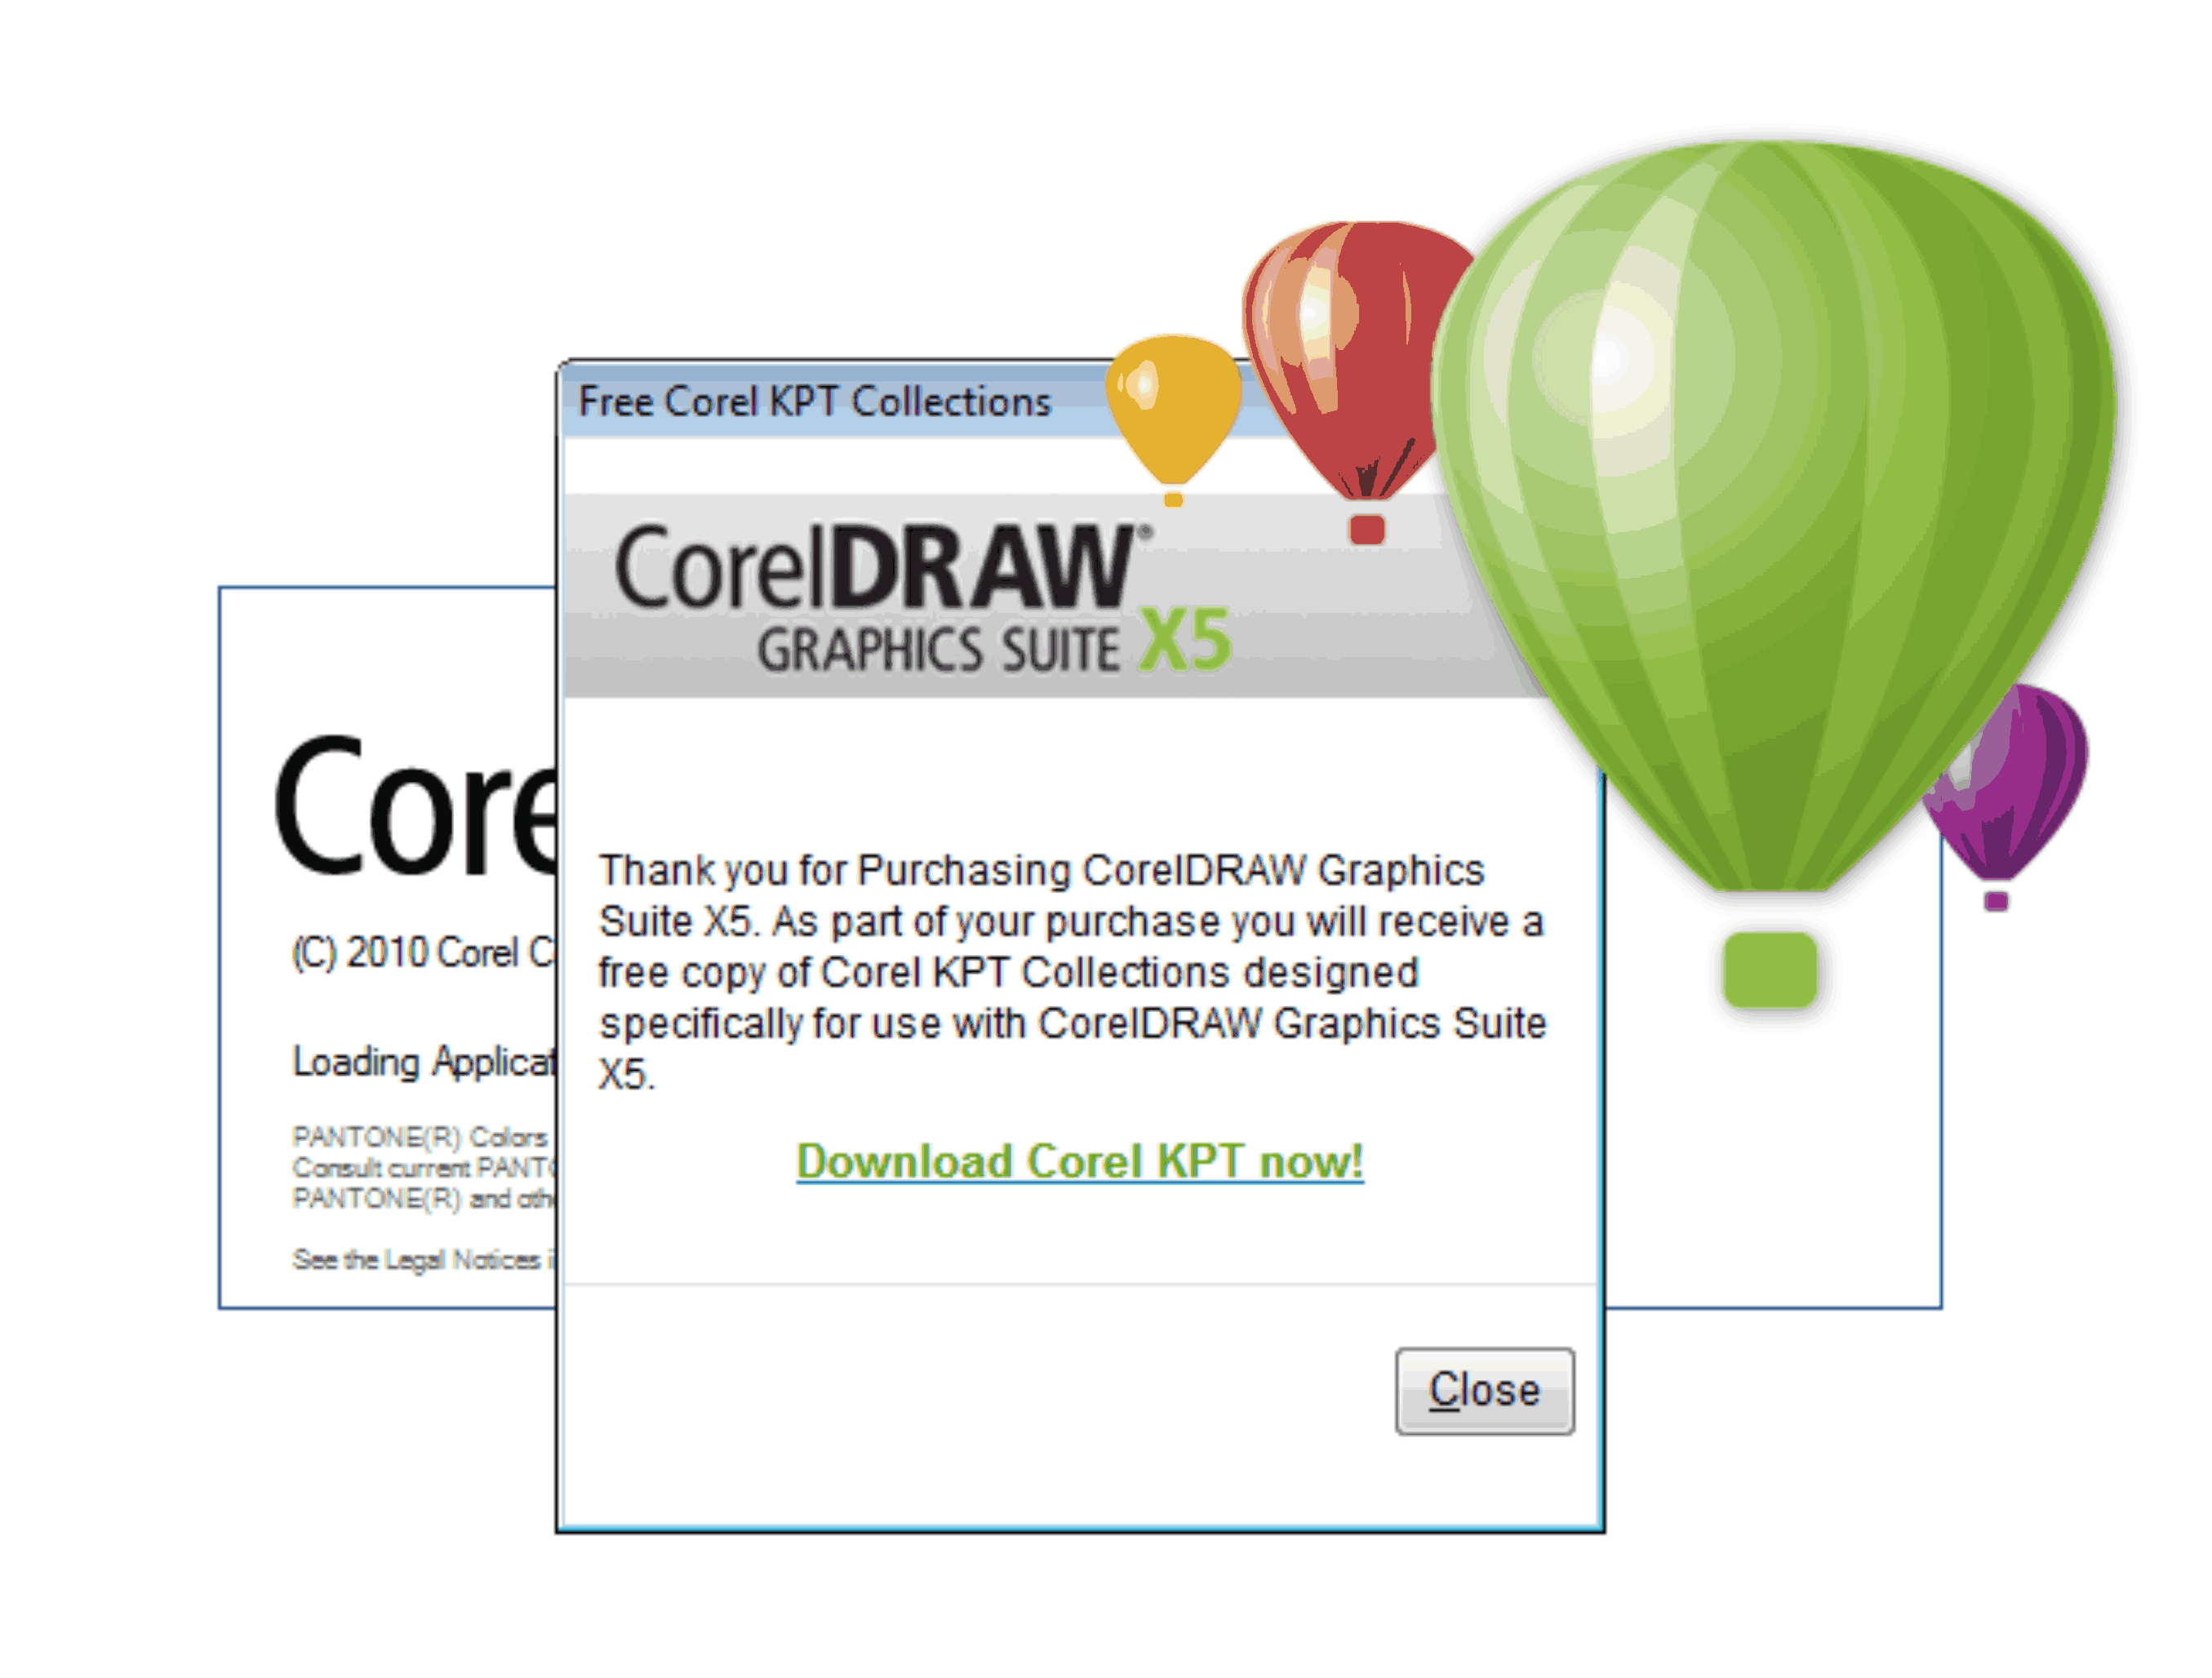 Coreldraw color palette free download - Kpt